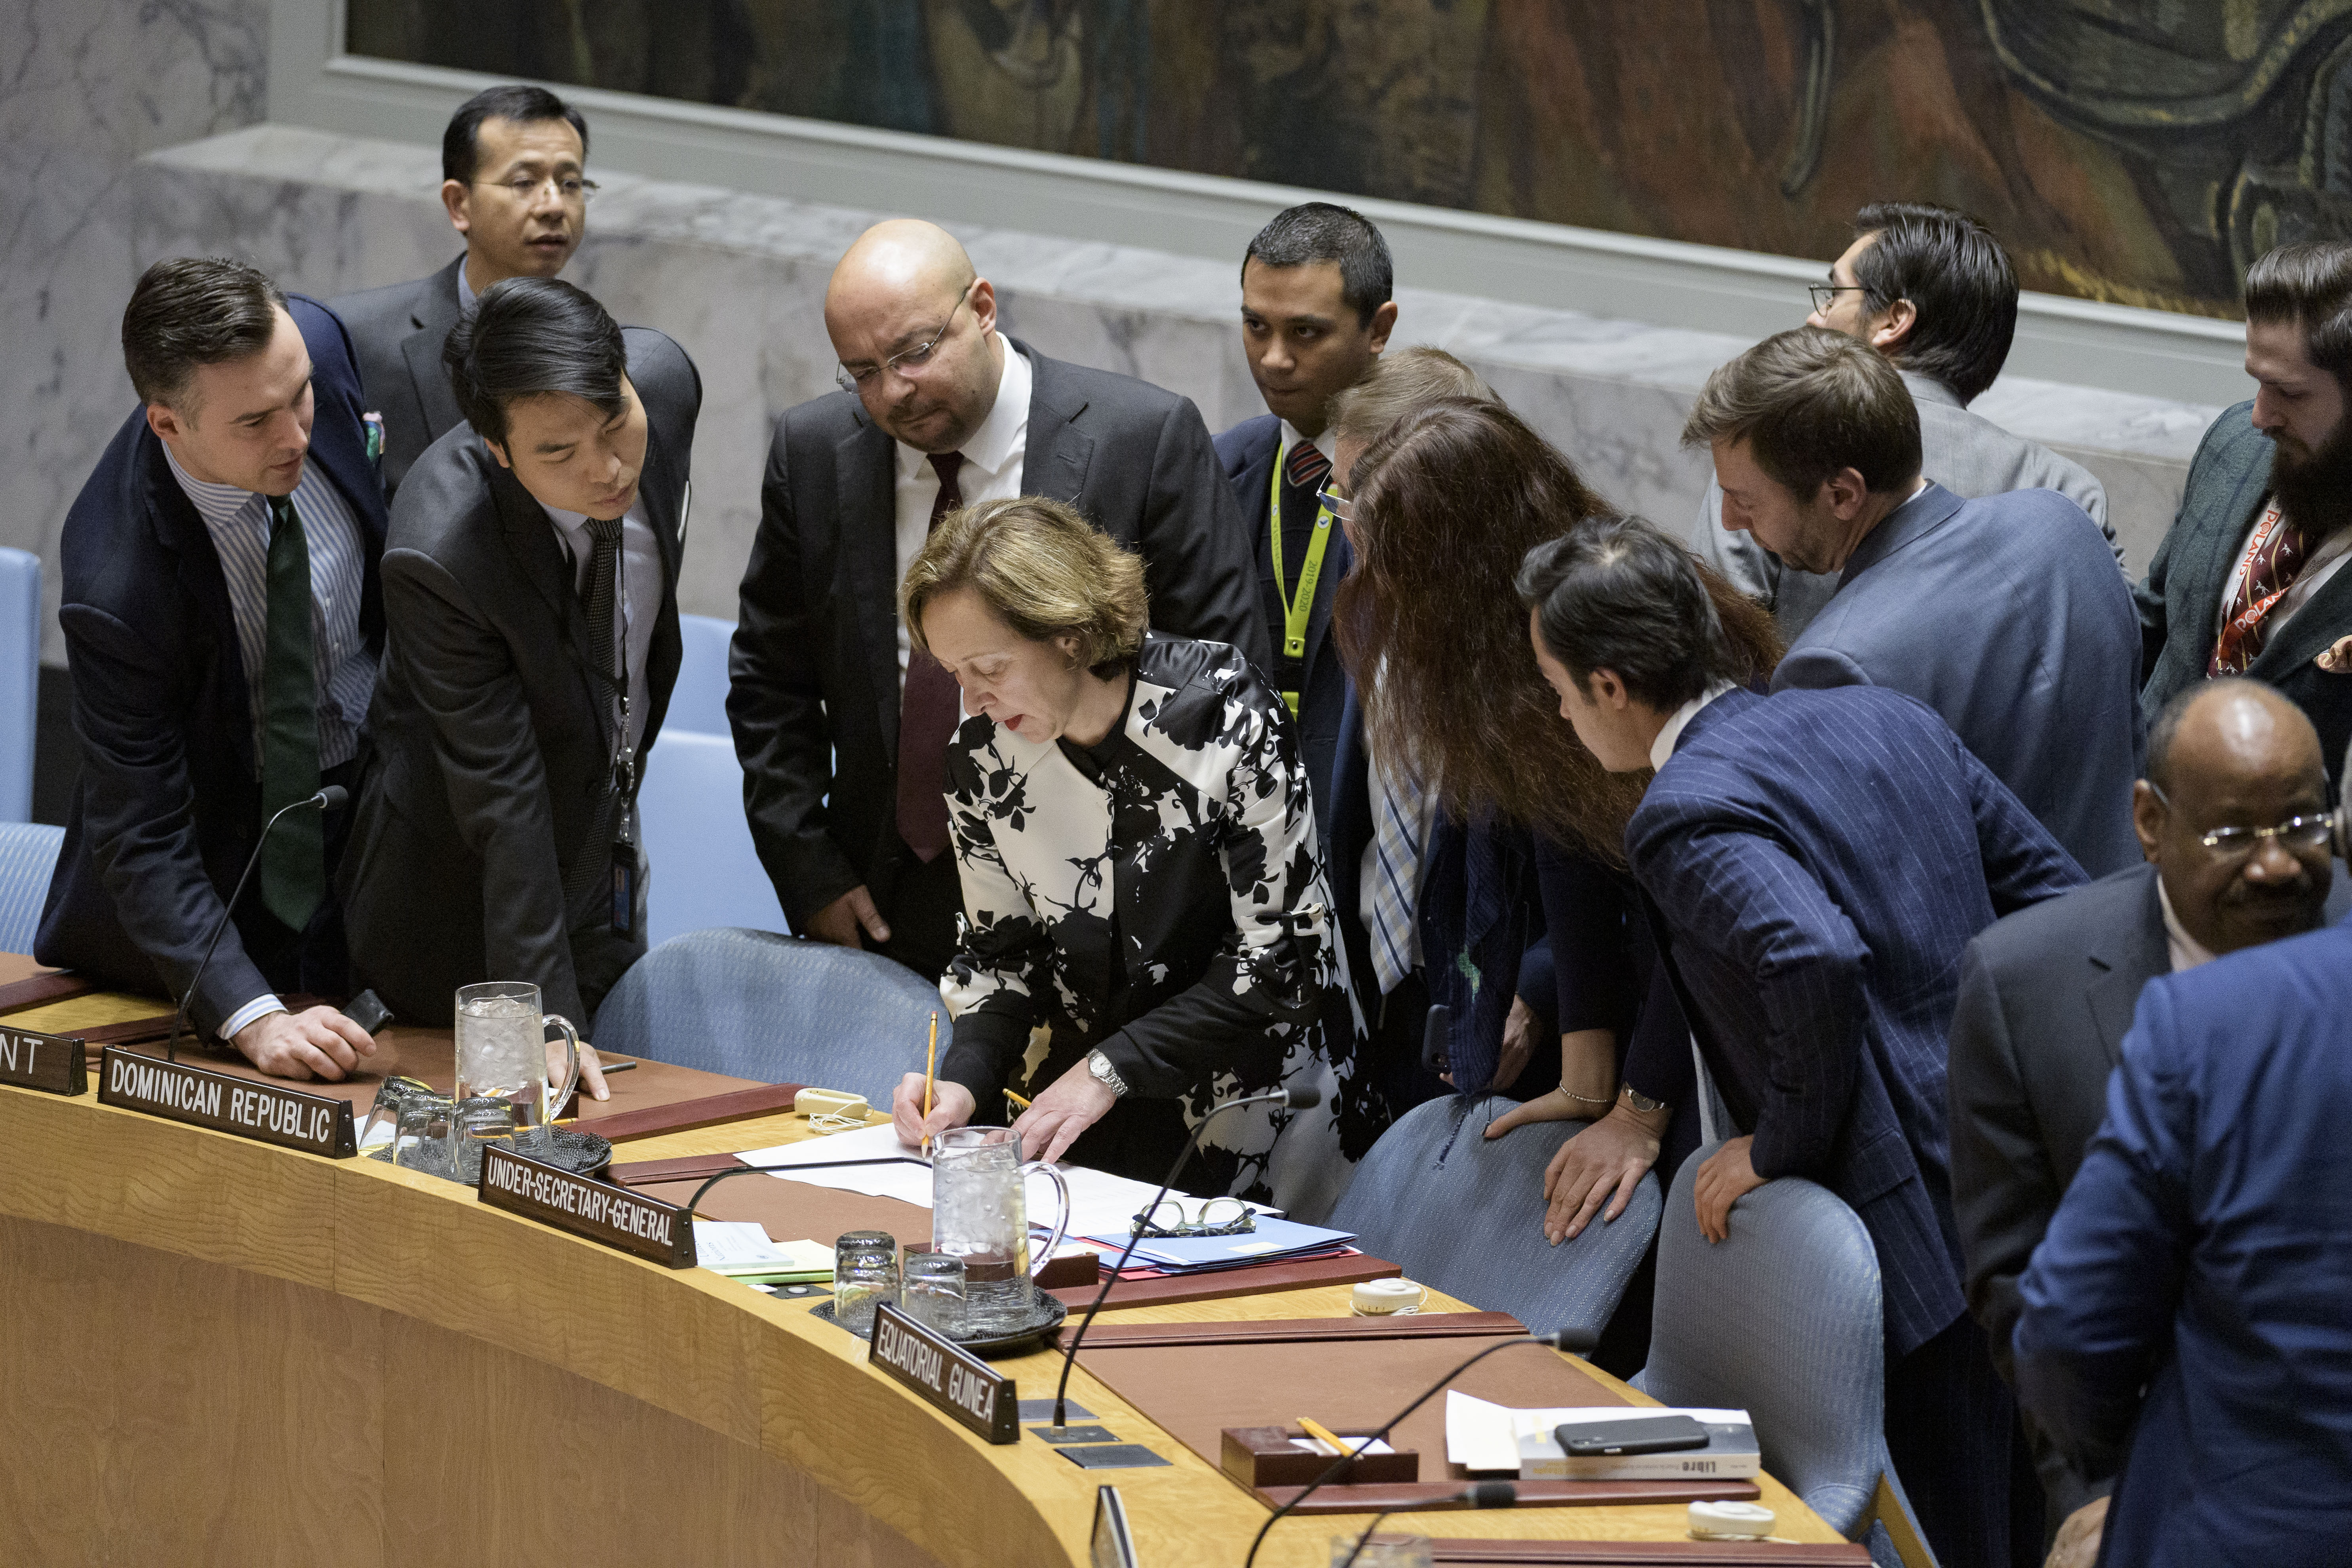 Hasmik Egian (centre), Director of the Security Council Affairs Division of the Department of Political and Peacebuilding Affairs (DPPA), receives requests for interventions ahead of the Security Council meeting on the situation in Venezuela.